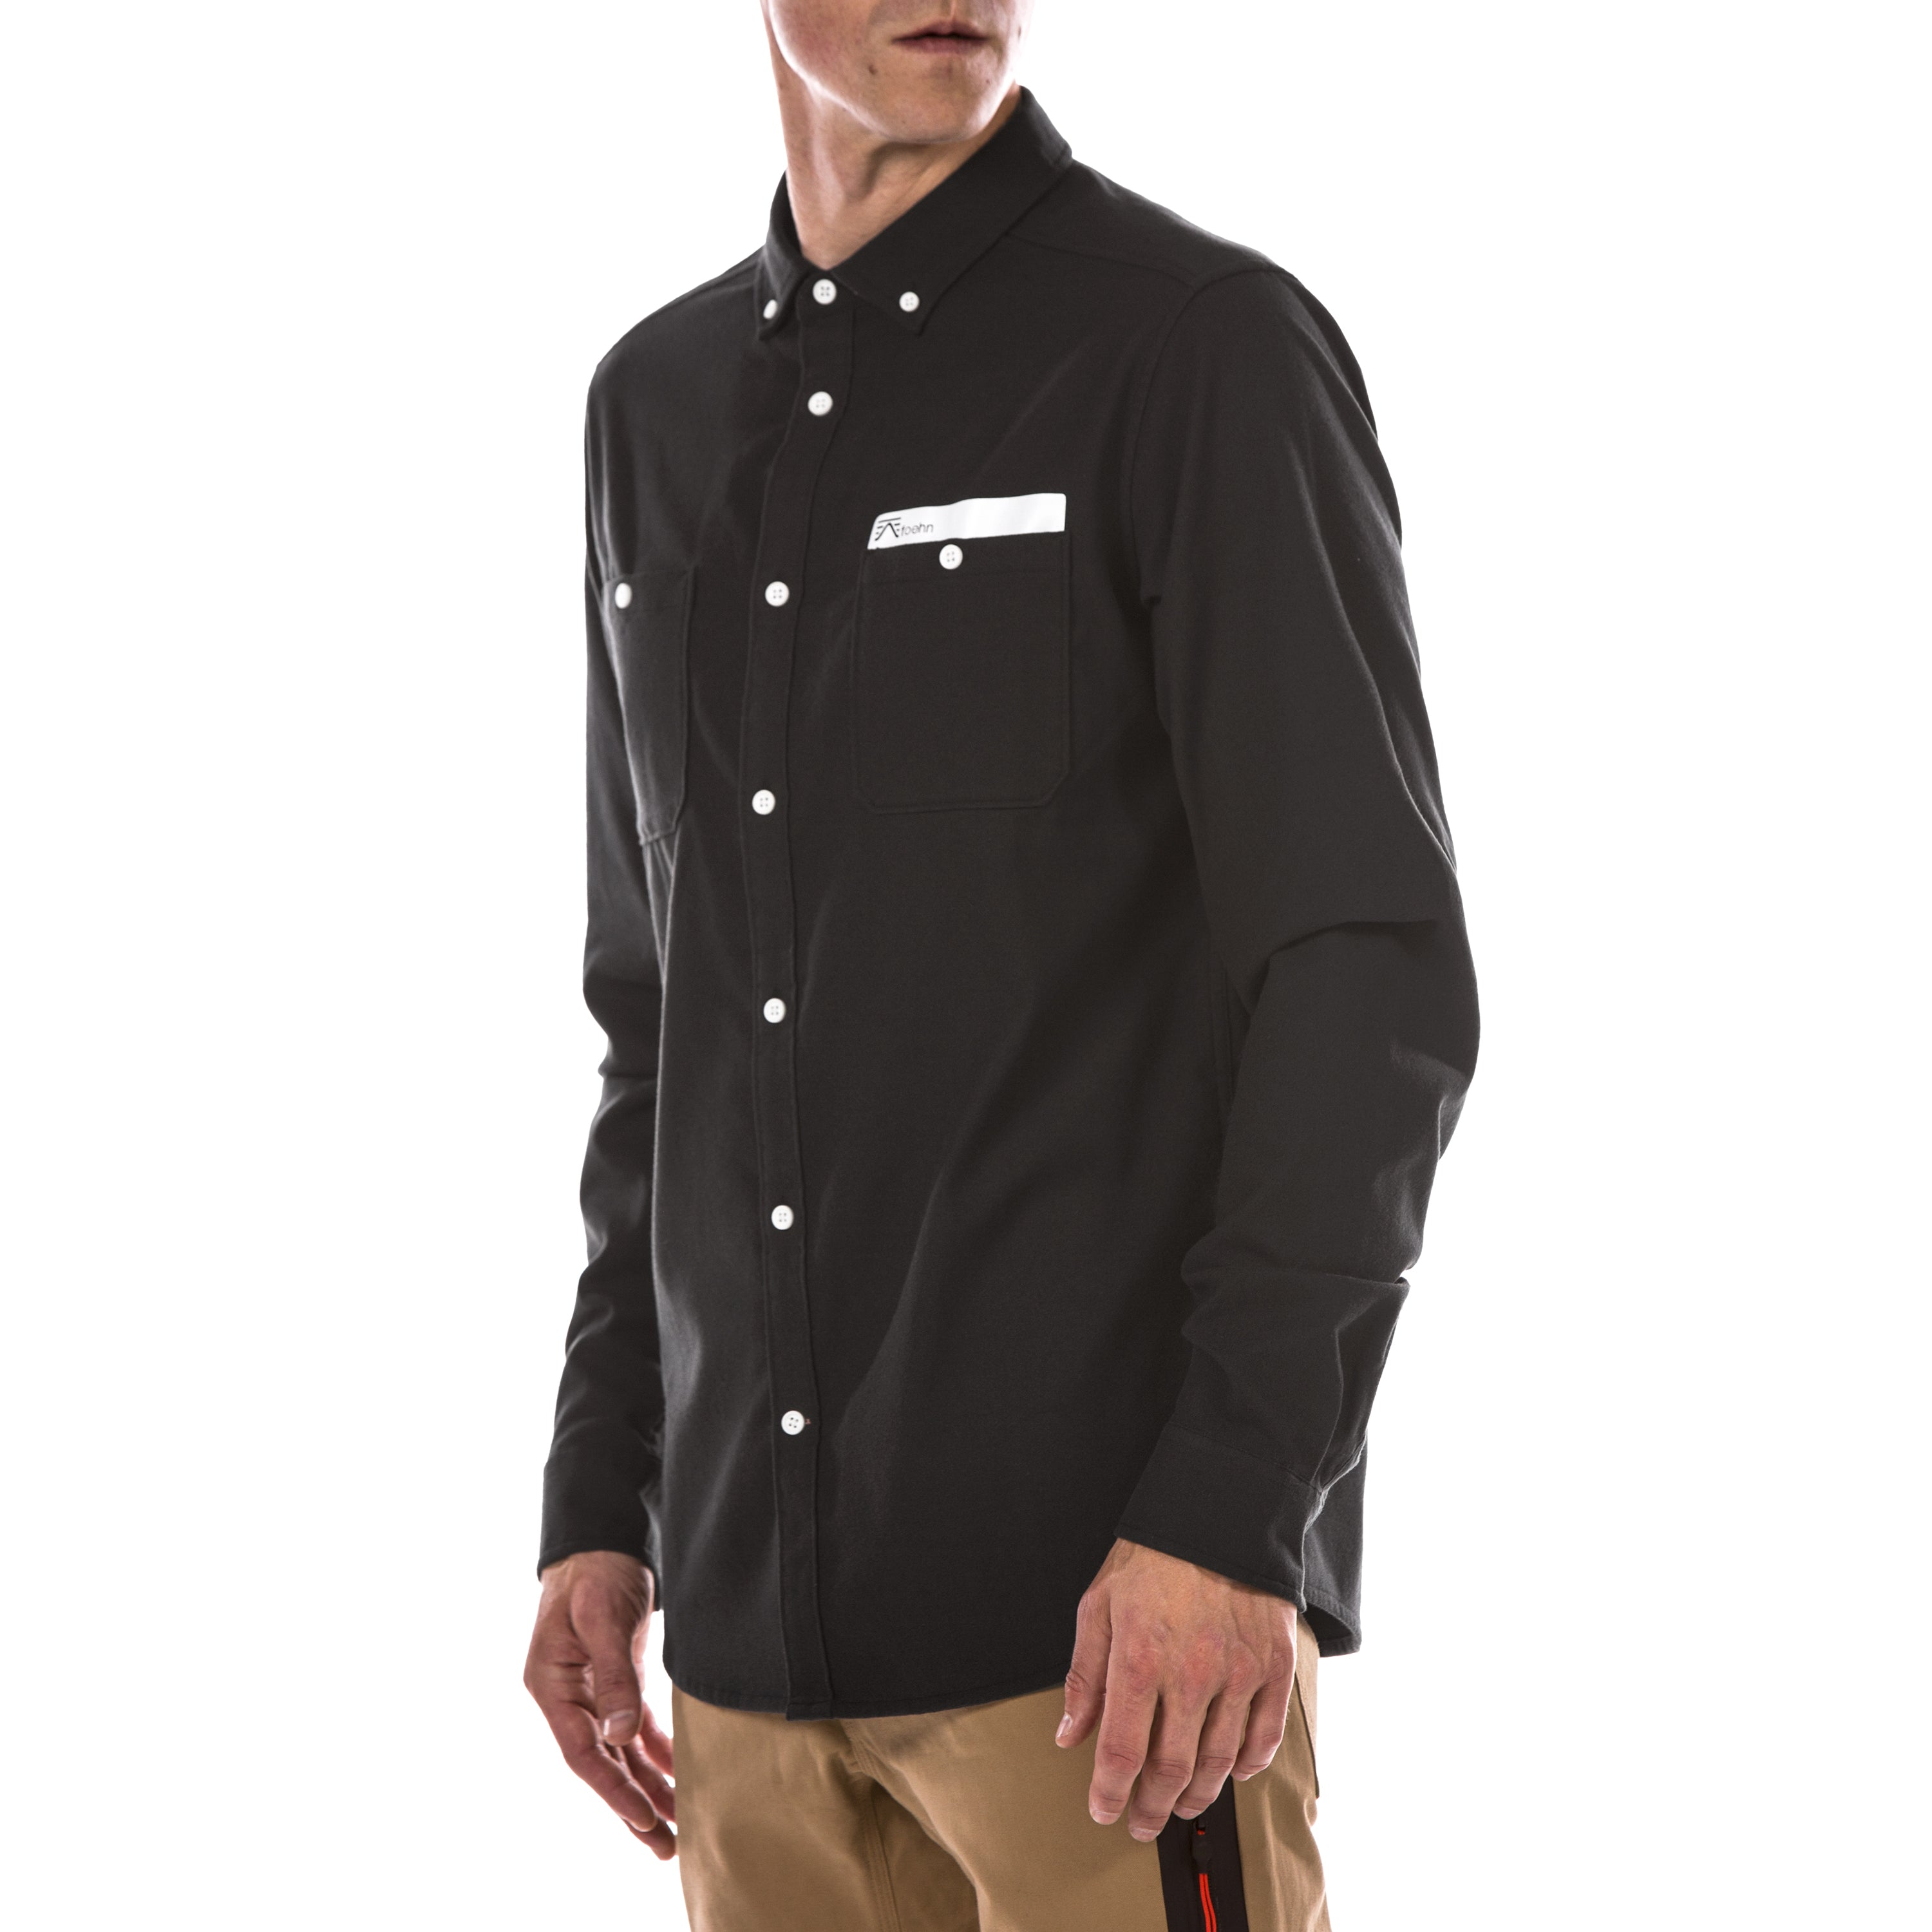 Foehn rock climbing Collins Flannel Shirt Black